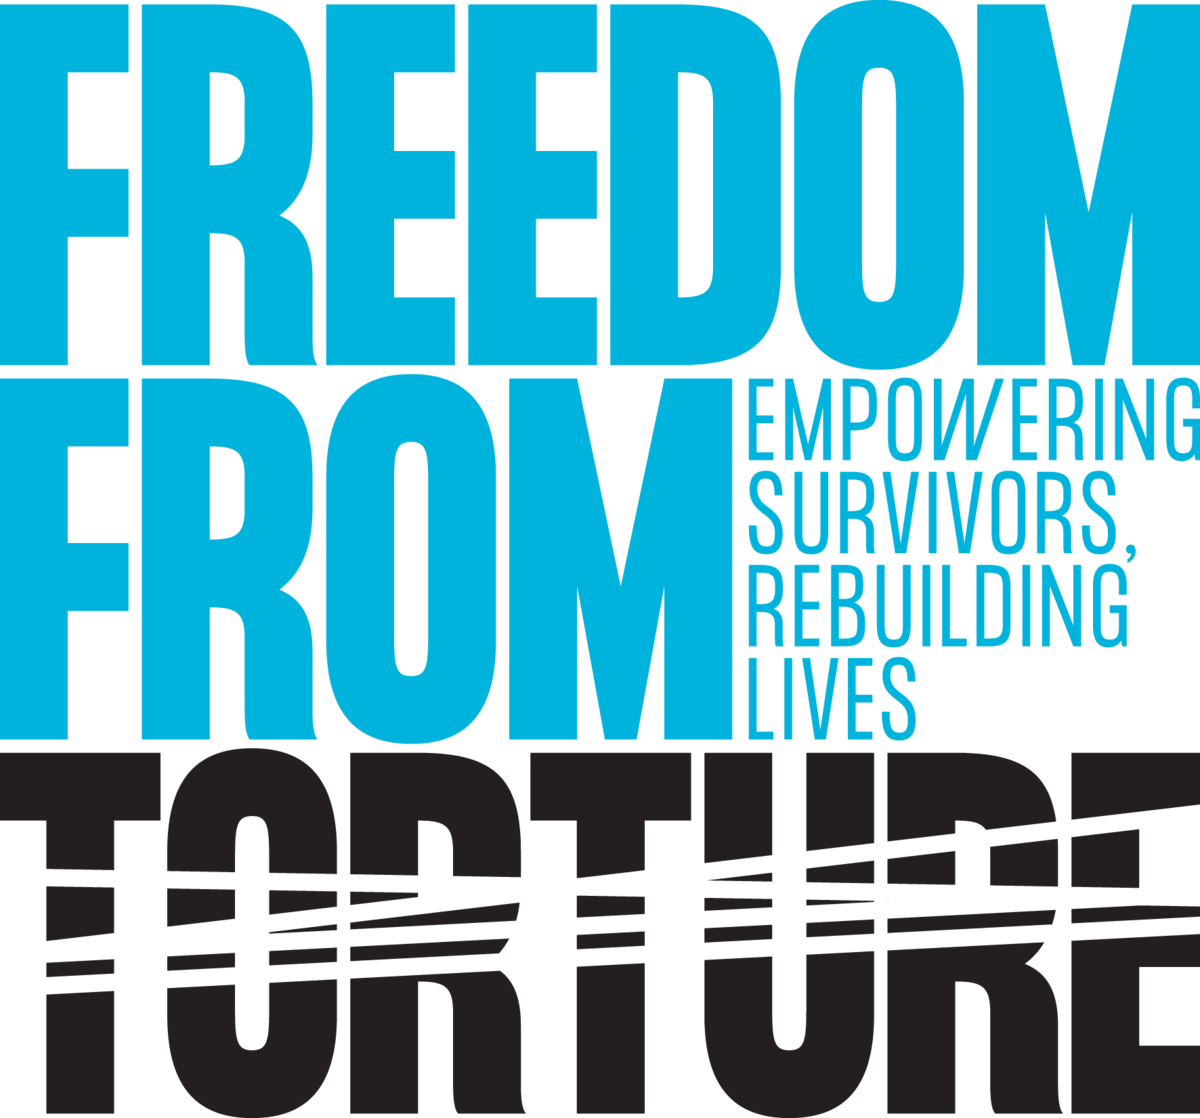 Freedom from Torture - Wikipedia